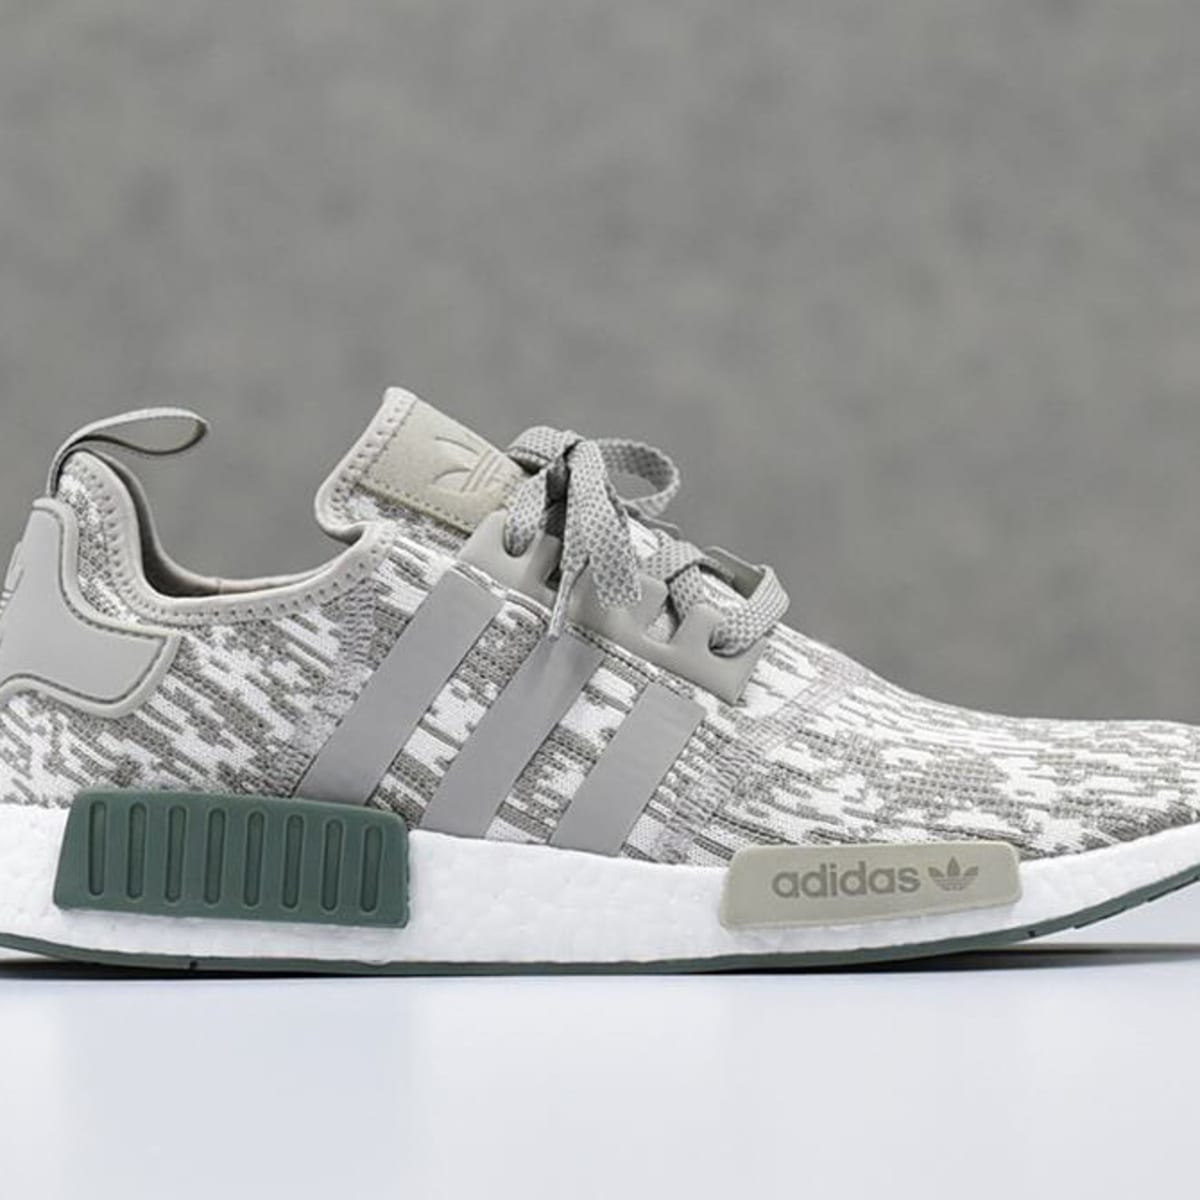 This adidas NMD R1 Colorway is